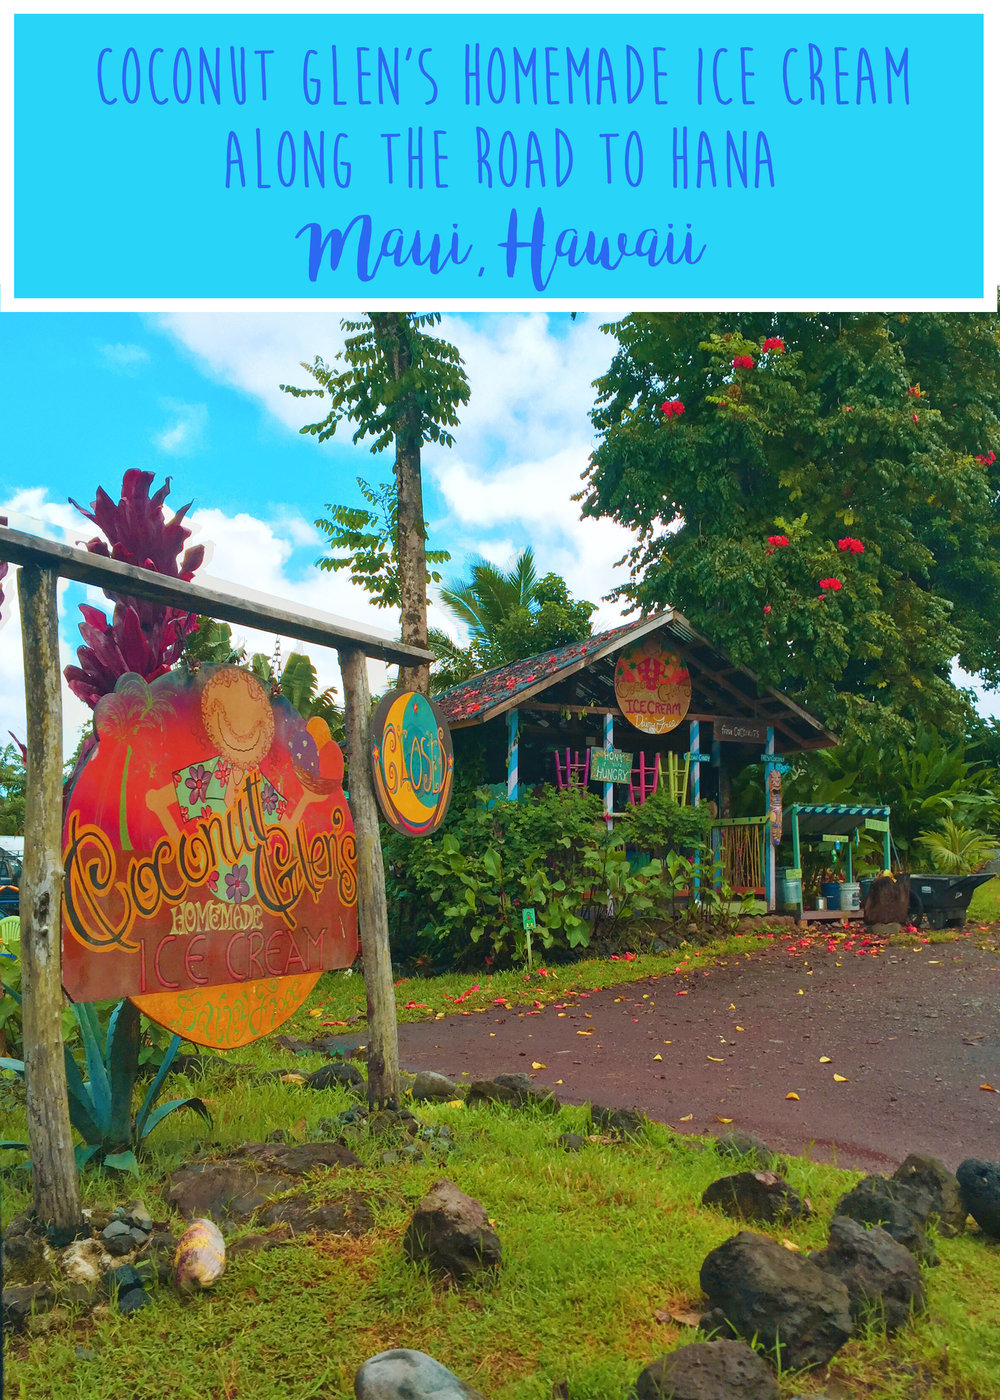 Coconut Glen's Organic Homemade Ice Cream - Road to Hana, Maui, Hawaii - Wandering Jokas Travel & Ice Cream Blog